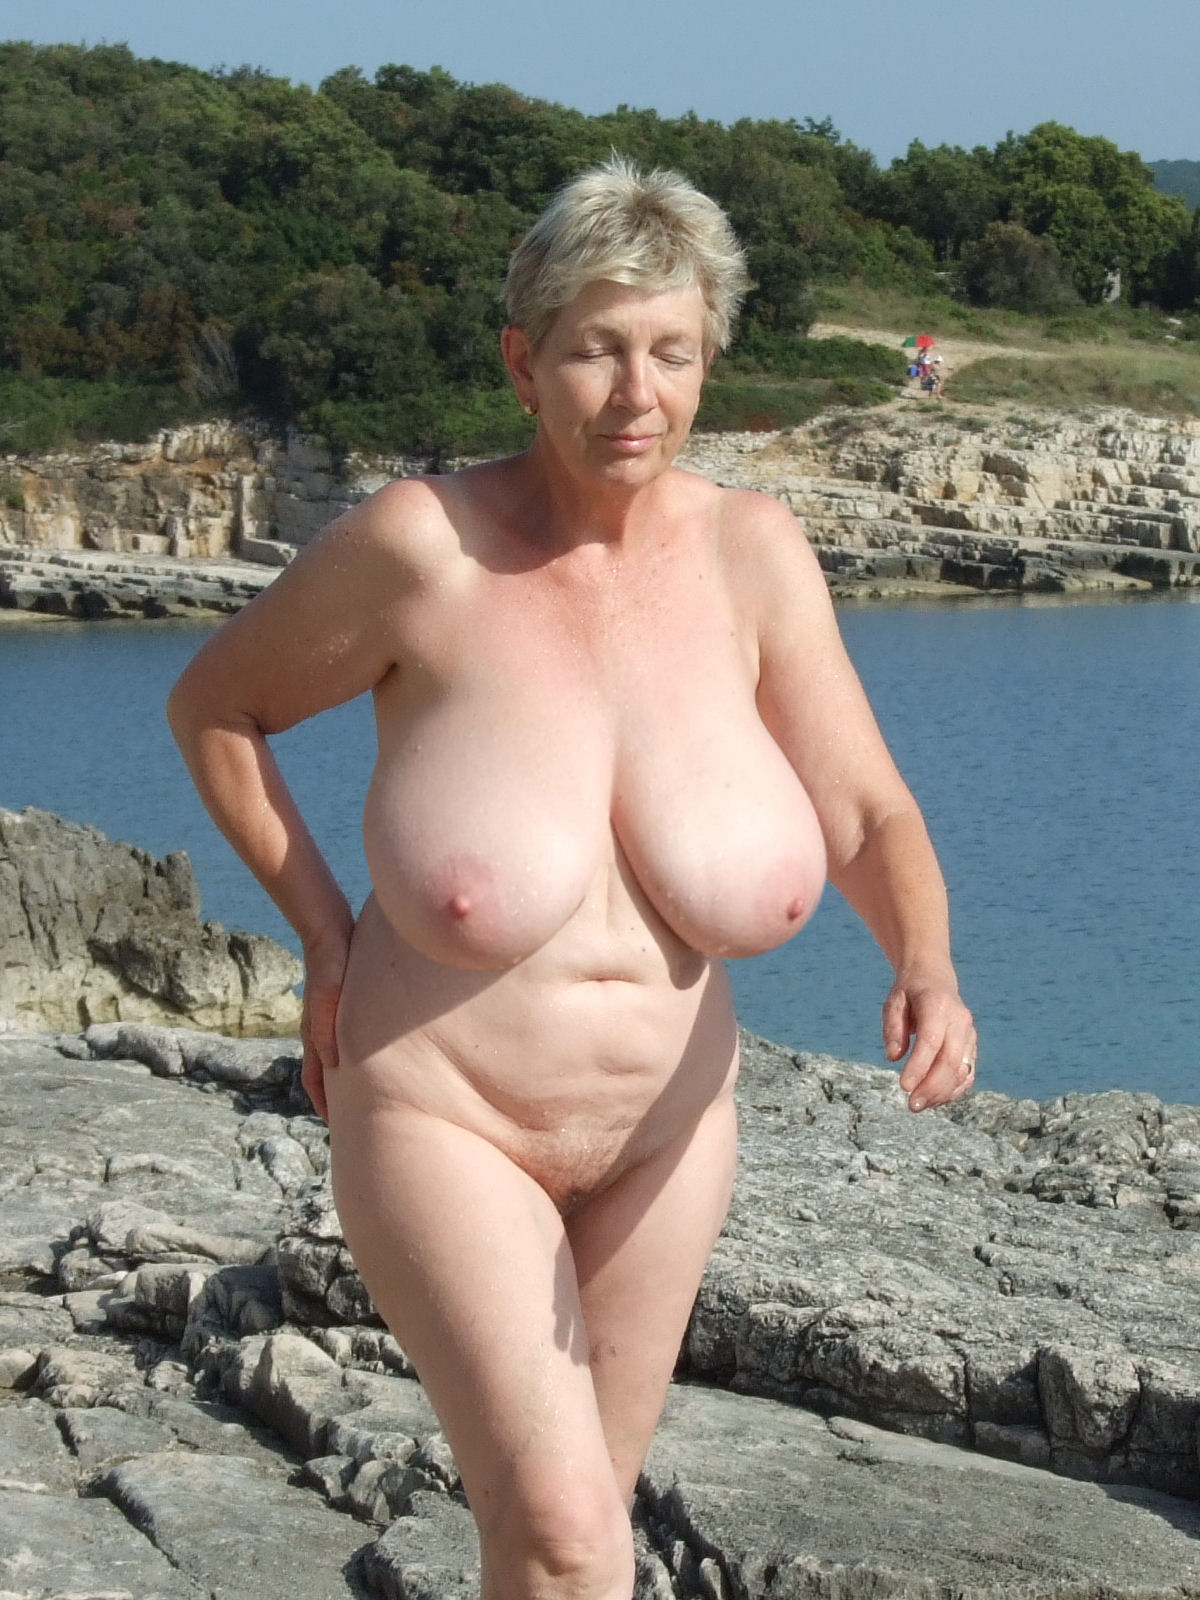 Huge boobies on older women naked